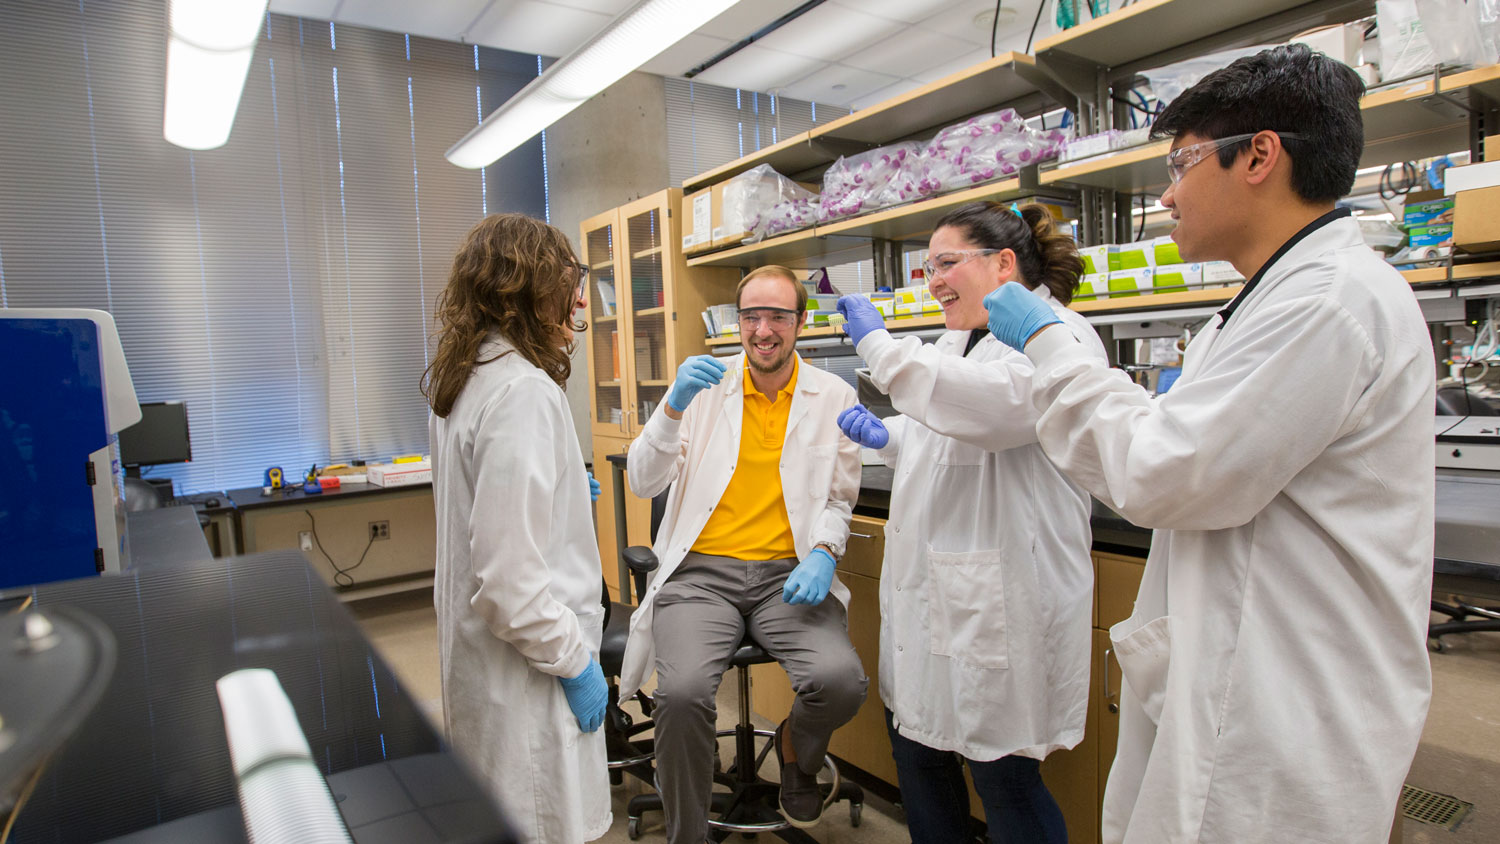 Kaleia Kramer (second from right), recent biomedical engineering graduate, worked with other students in the lab as part of her research requirement for the Grand Challenge Scholars Program.